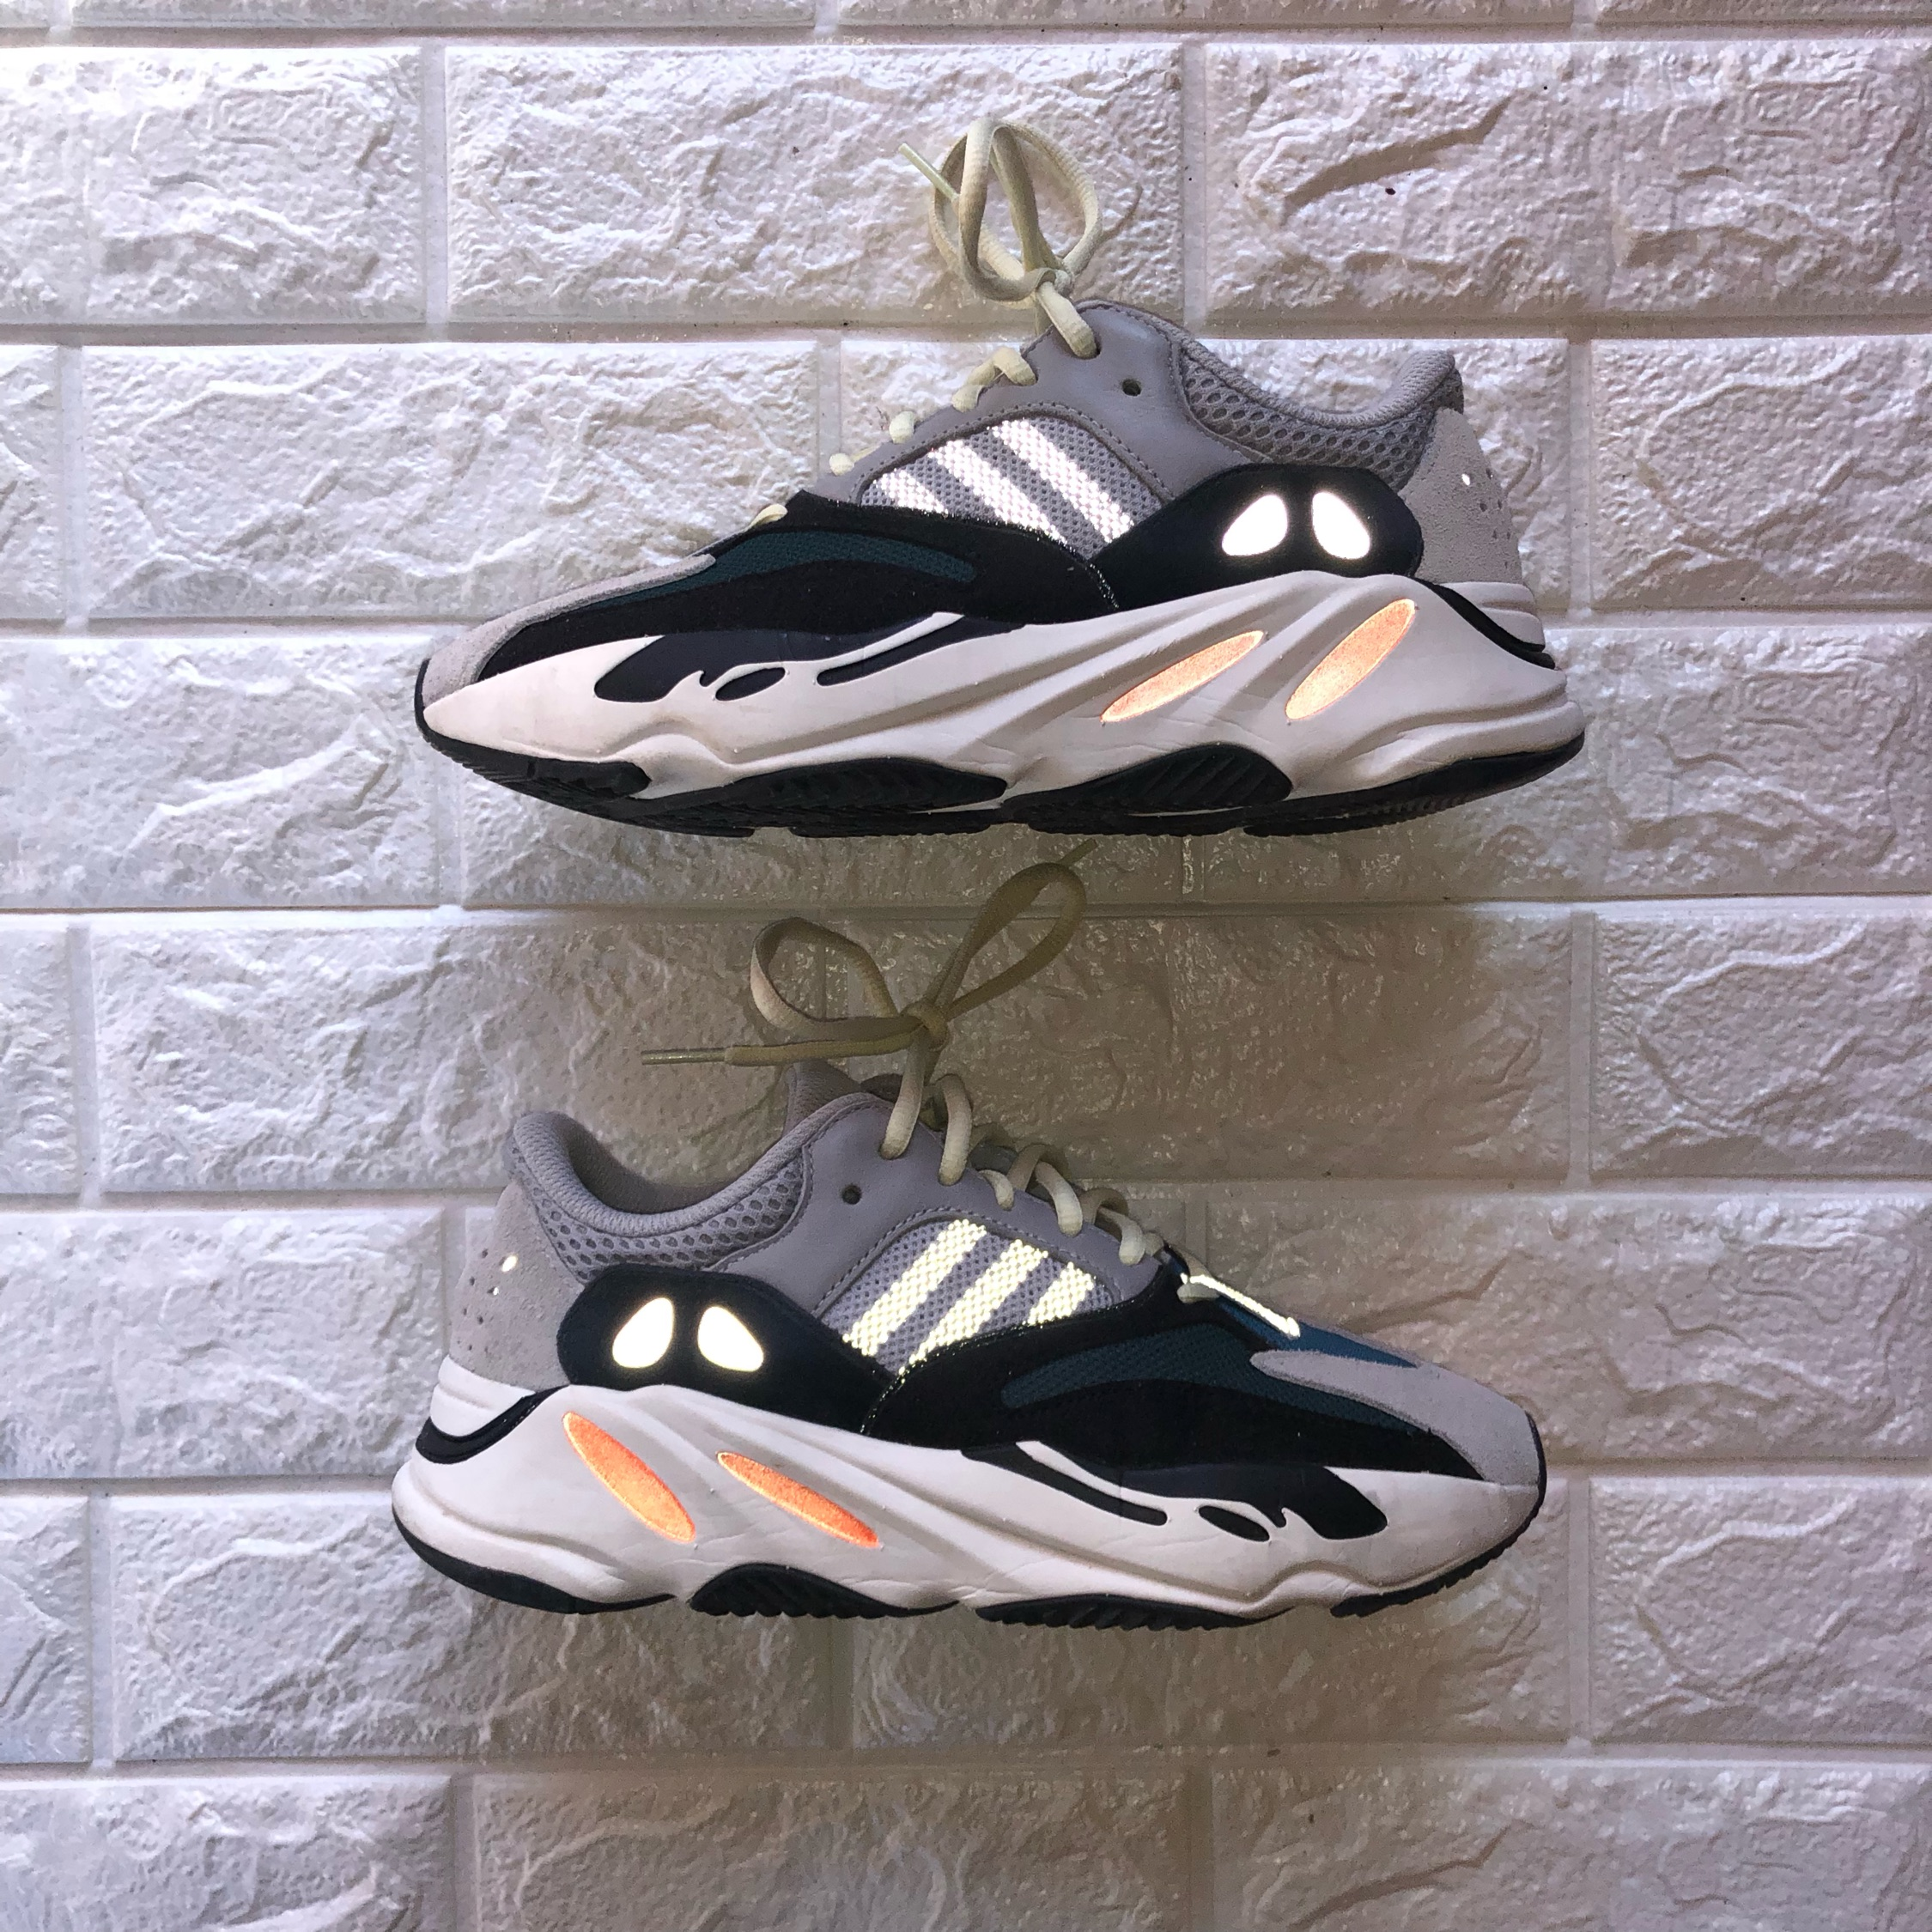 065cd2ced95c4 Yeezy Boost 700 Wave Runner Size 39 1 3